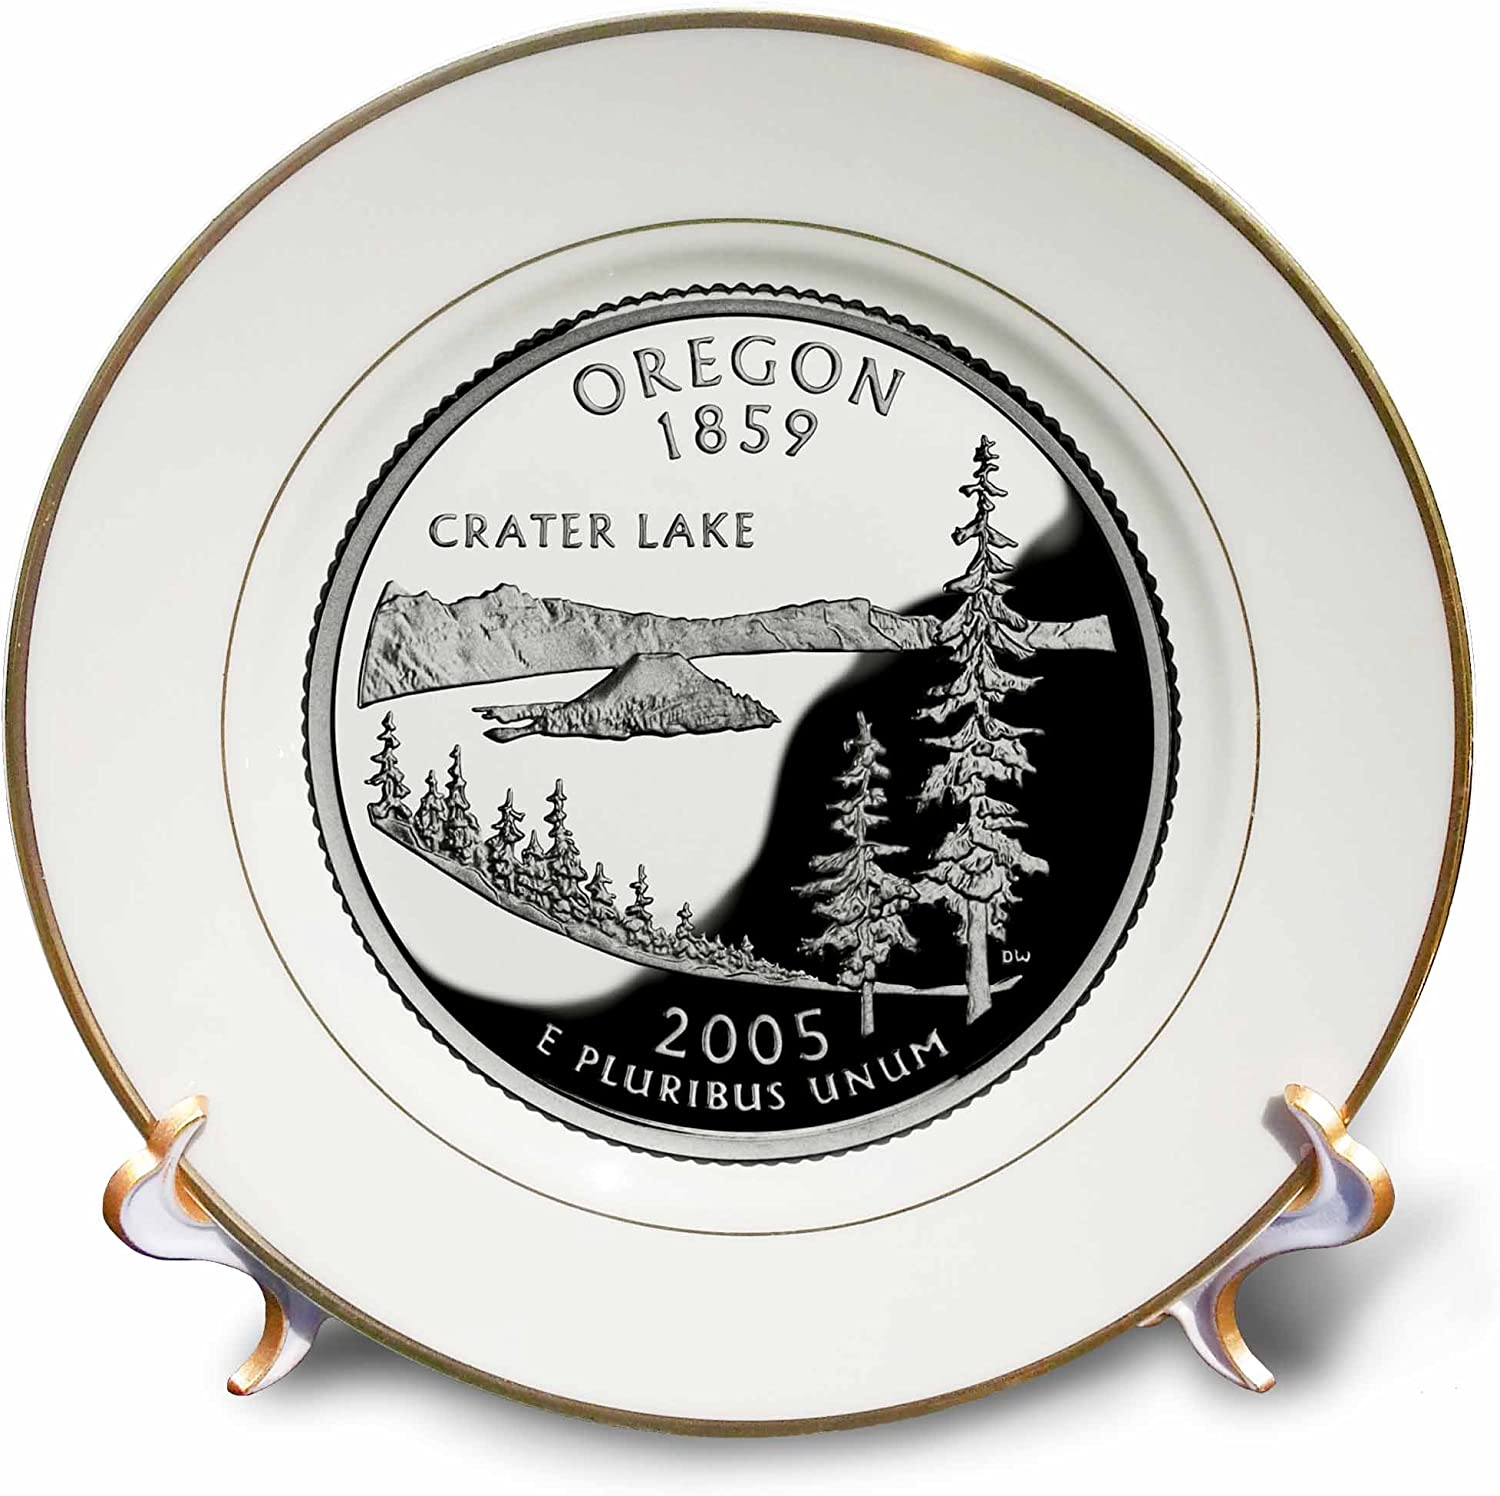 trust New life 3dRose cp_55300_1 State Quarter of PD-US Plate Oregon Porcelain